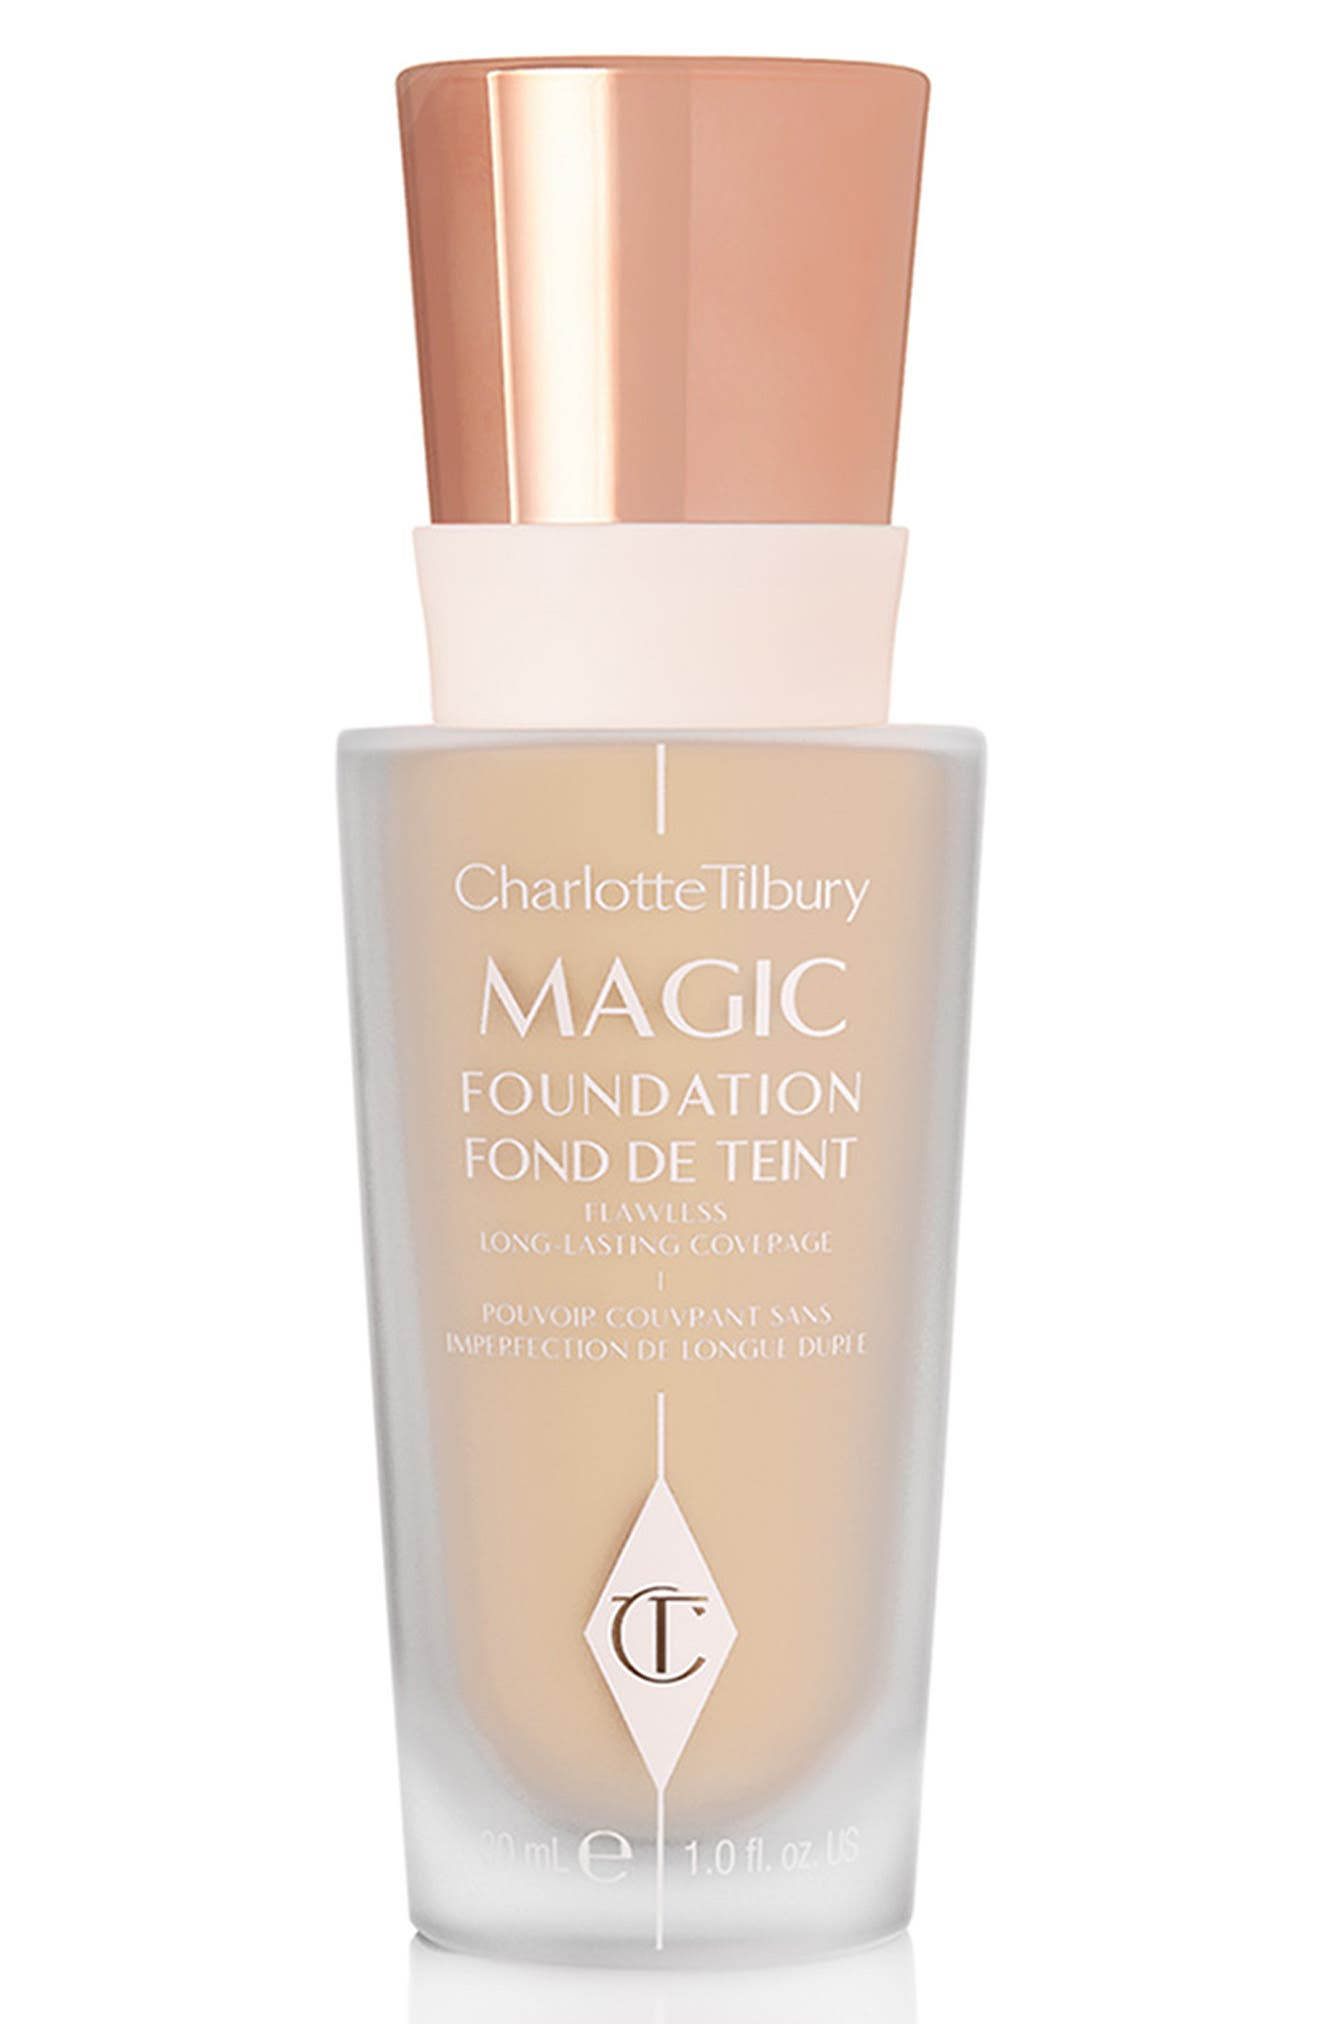 CHARLOTTE TILBURY MAGIC FOUNDATION BROAD SPECTRUM SPF 15 - 4 FAIR